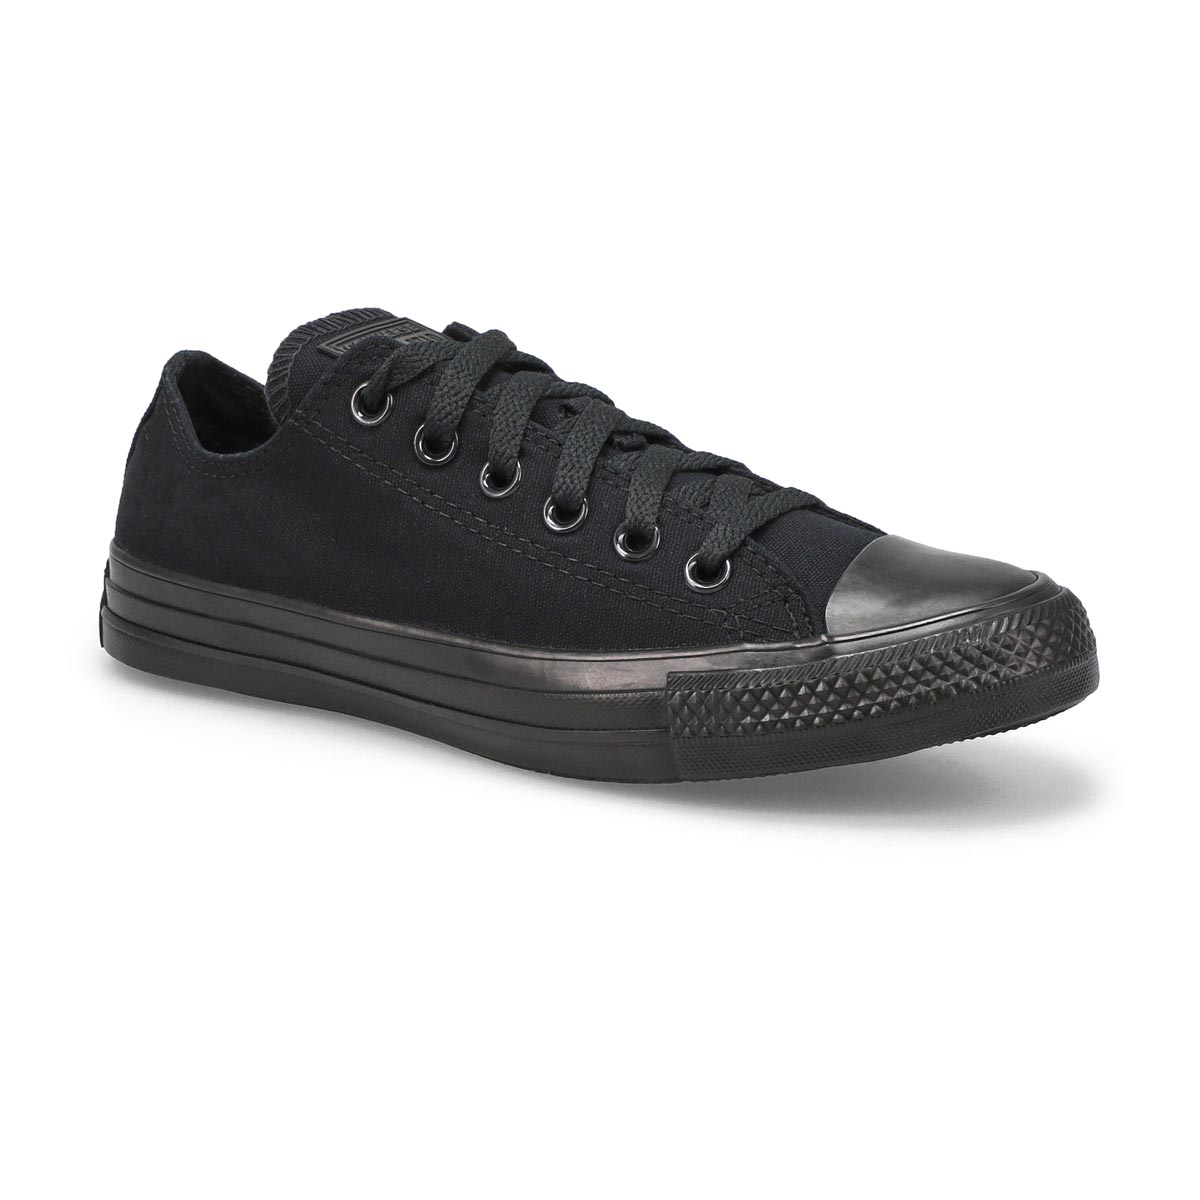 Converse Chuck Taylor All Star Low Blackout Canvas Plimsolls Men Shoes M5039C